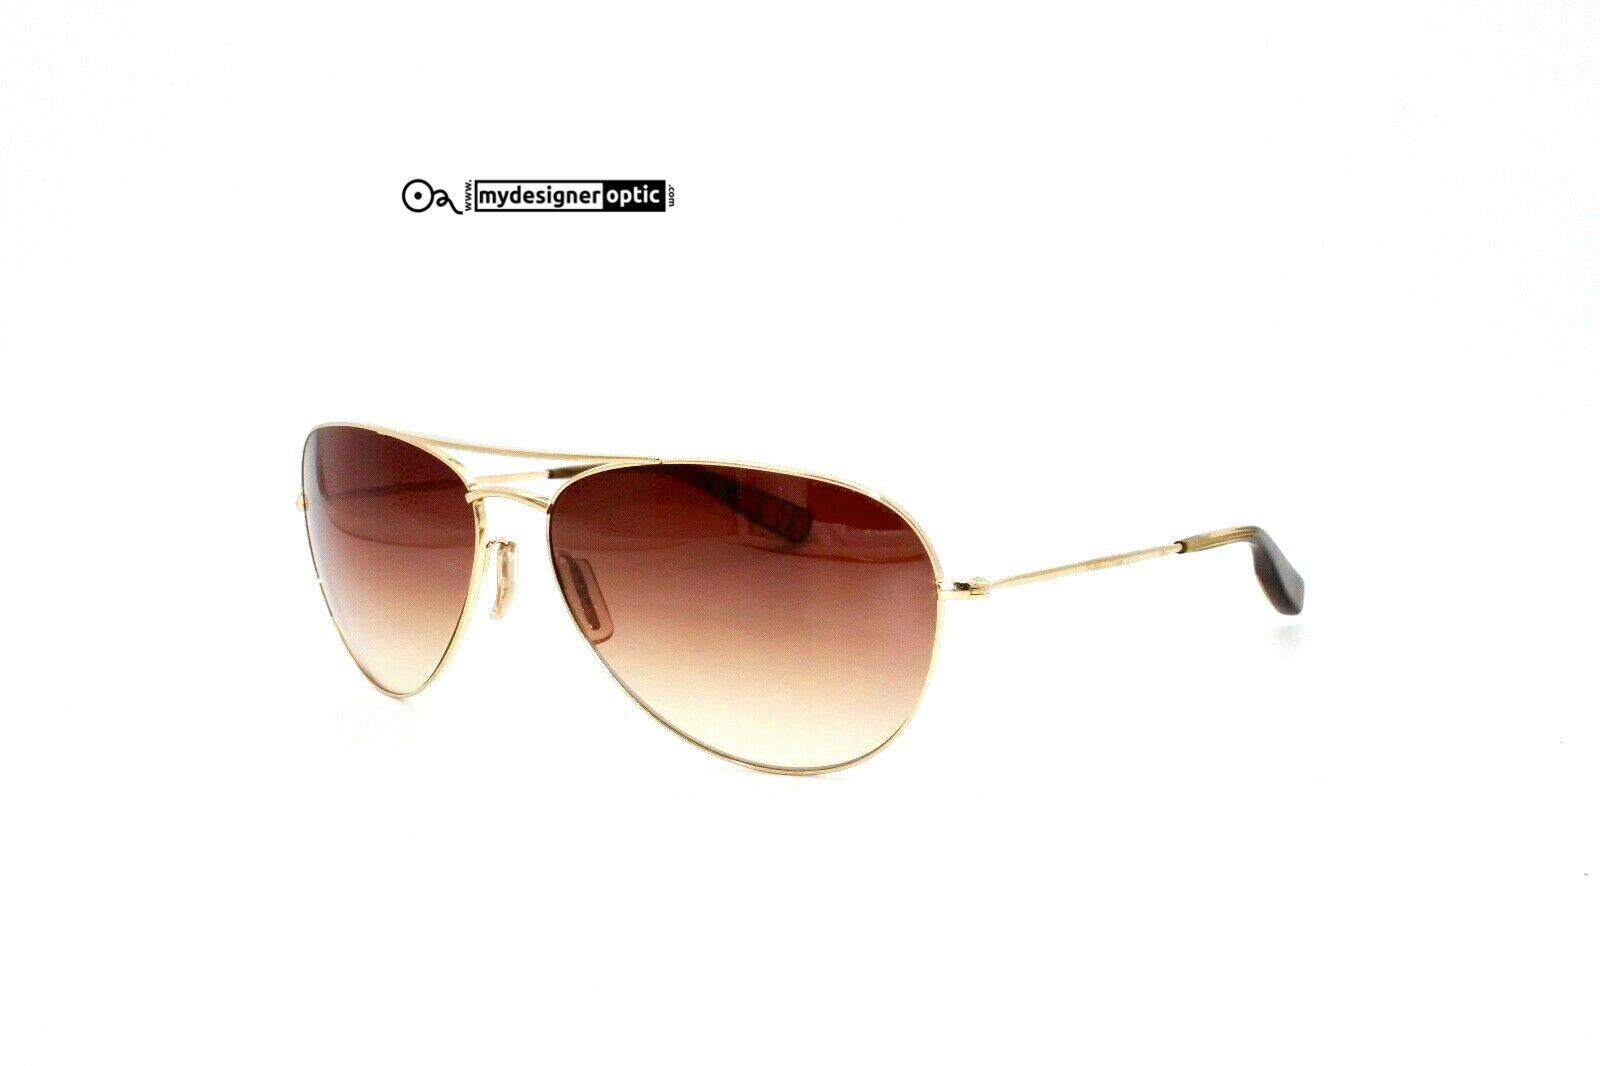 Paul Smith Sunglasses PS-817 (64) 135 Made in Japan (Real Dead Stock) - Mydesigneroptic